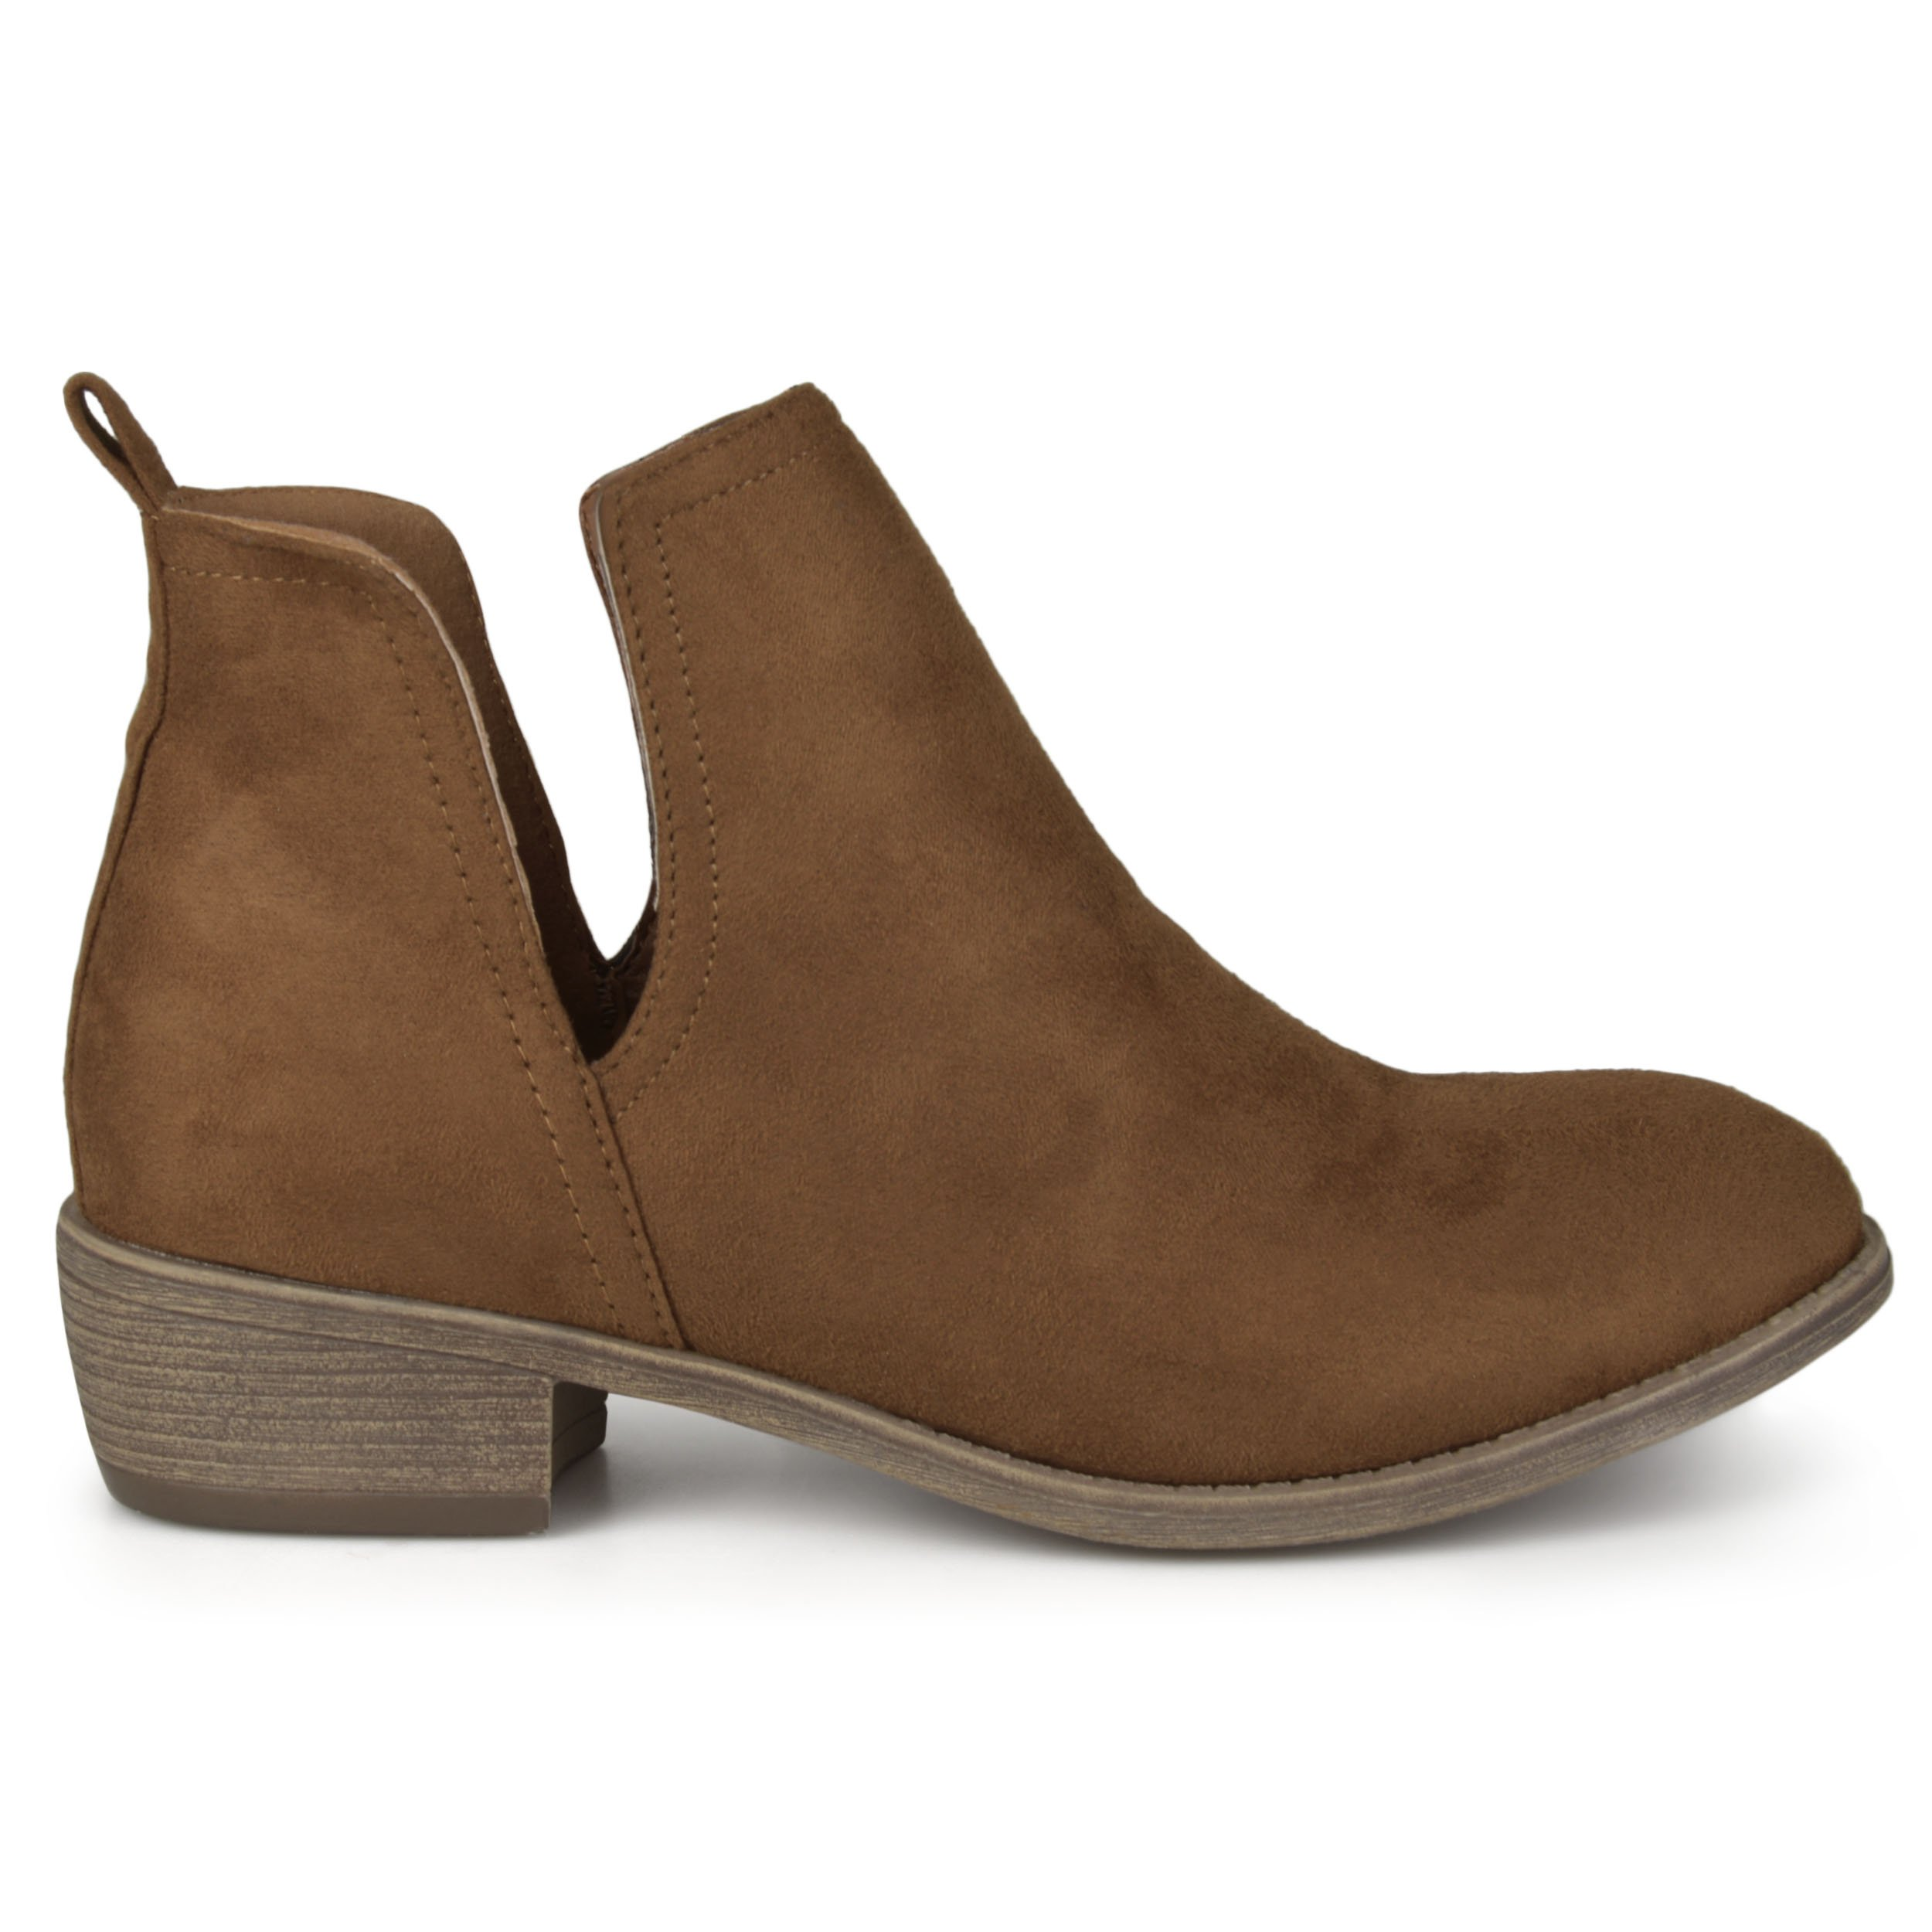 Brinley Co. Womens Faux Suede Cut-Out Round Toe Boots Camel, 9 Wide Width US